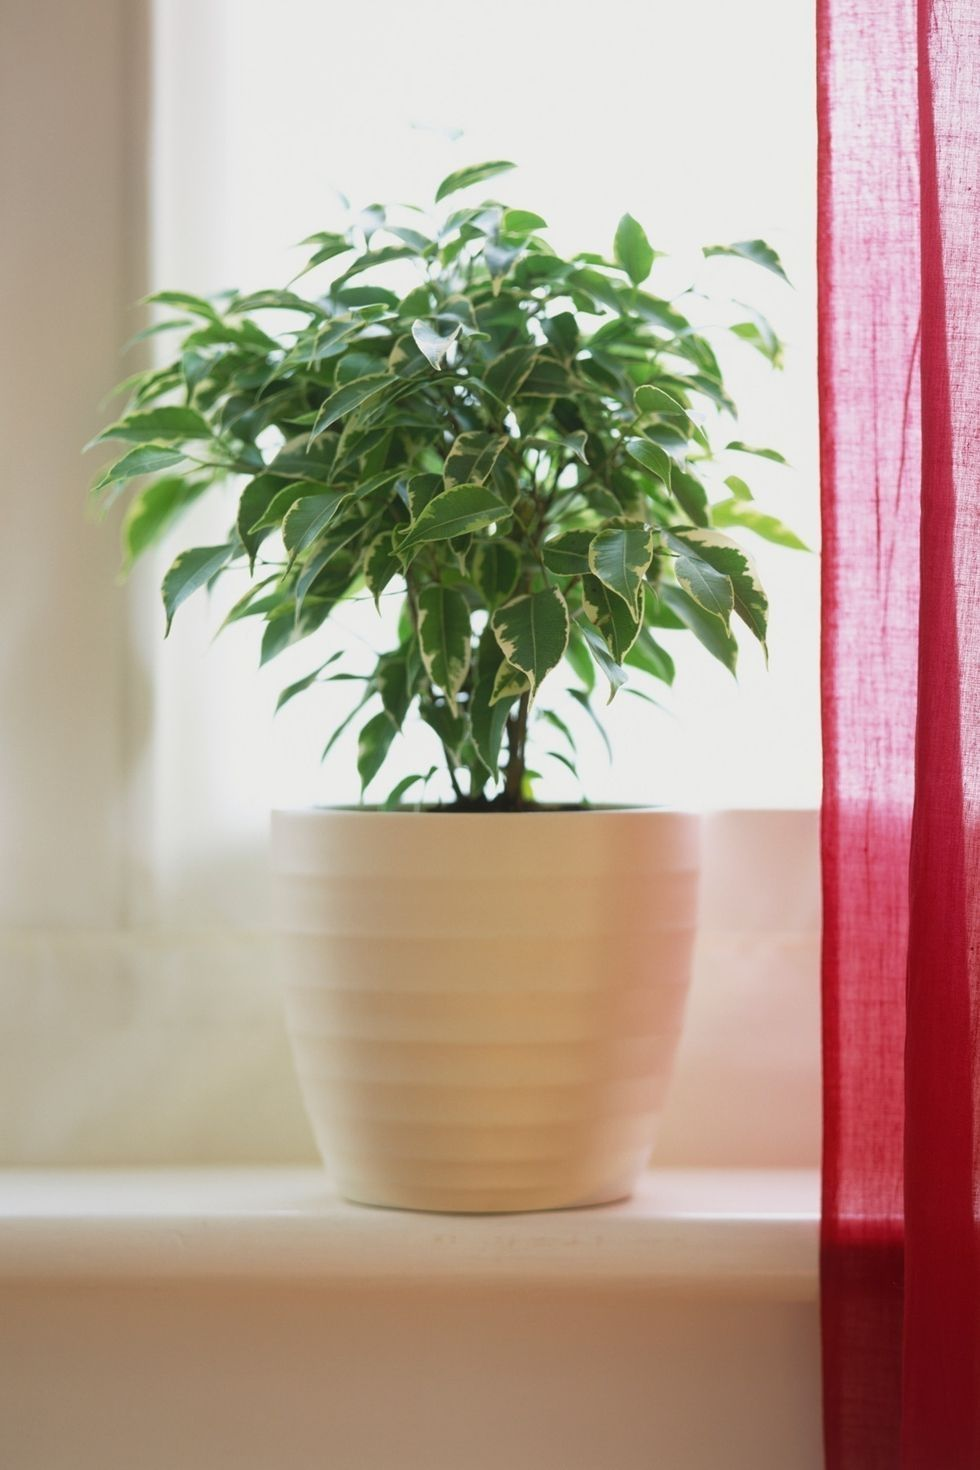 "<p><strong data-redactor-tag=""strong"" data-verified=""redactor"">Care level:</strong> Intermediate</p><p>Bright but indirect light is best for this plant, which people often put in common spaces of their homes, like the <a href=""http://www.housebeautiful.com/lifestyle/gardening/a8439/houseplant-cheat-sheet/"" data-href=""http://www.housebeautiful.com/lifestyle/gardening/a8439/houseplant-cheat-sheet/"" target=""_blank"">living room</a>. Water it every few days to keep the soil moist at all times. Since this plant is full and features many leaves, opt for a simple, white pot.<span data-redactor-tag=""span"" data-verified=""redactor""></span></p><p><a href=""https://www.amazon.co.uk/Ficus-benj-Kinky-Houseplant-Weeping/dp/B00VFV3NM0/ref=sr_1_7?s=outdoors&ie=UTF8&qid=1515603145&sr=1-7&keywords=Weeping+Fig"" target=""_blank"" data-tracking-id=""recirc-text-link""><strong data-redactor-tag=""strong"" data-verified=""redactor"">BUY NOW</strong></a></p>"